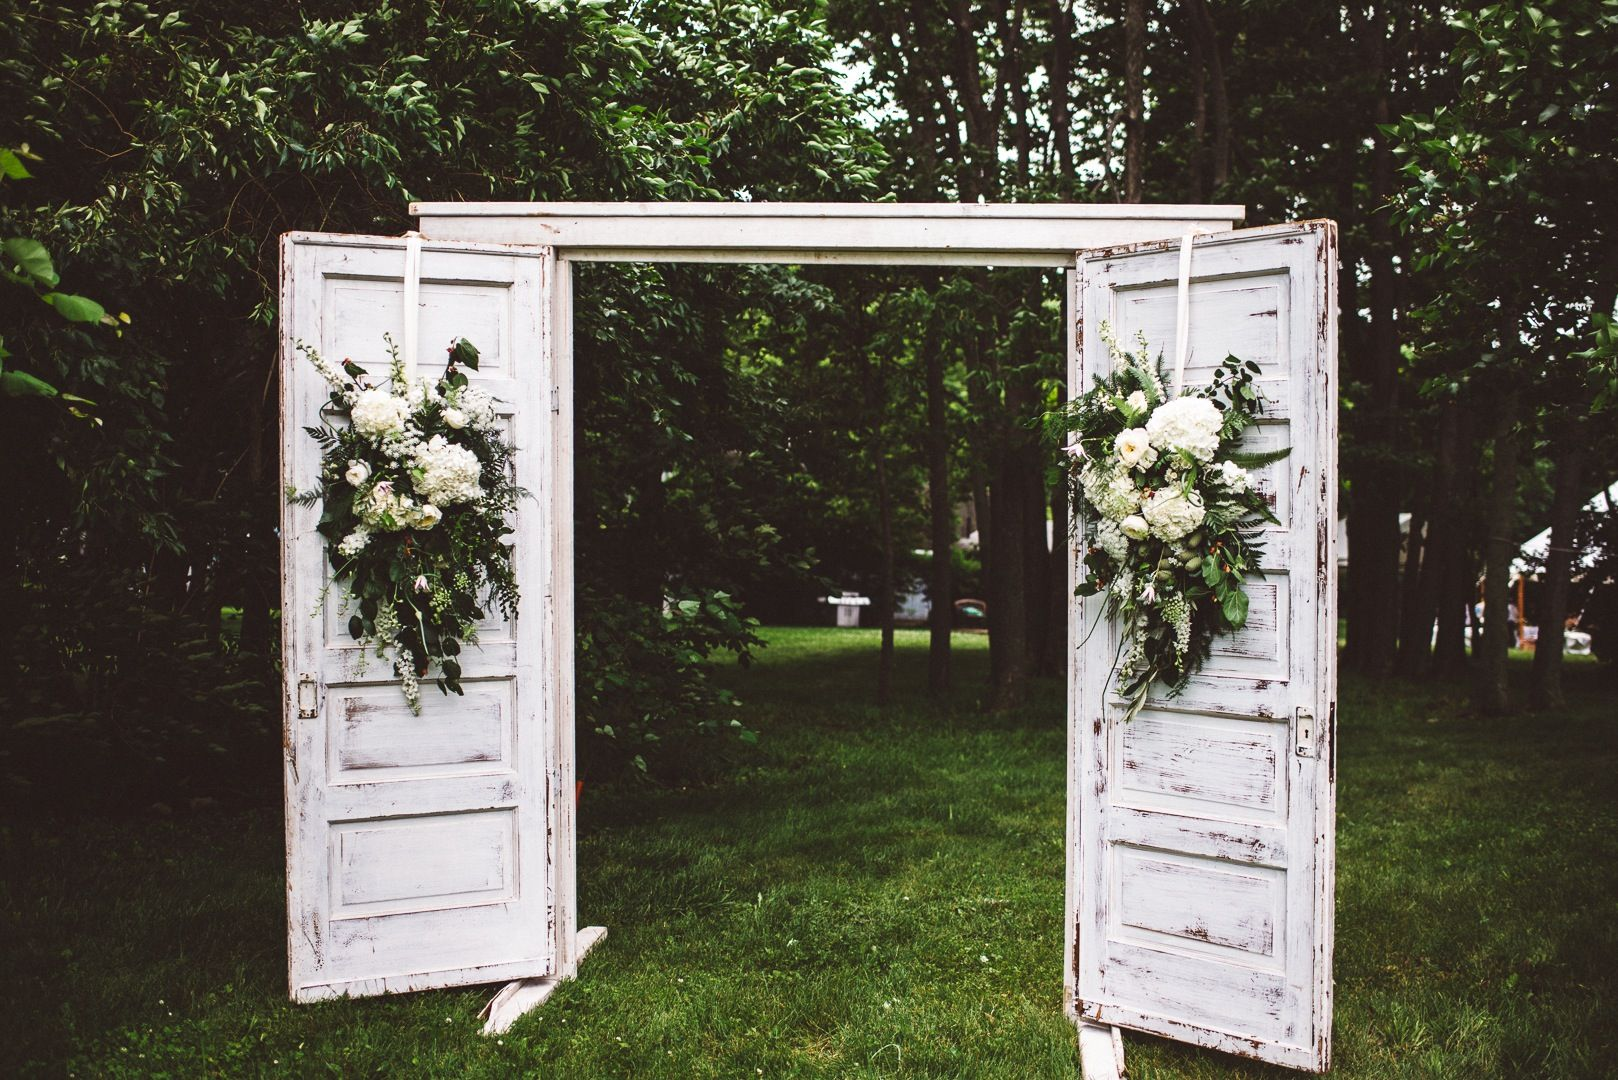 Naida Georgie By SUZURAN PHOTOGRAPHY Gorgeous Rustic Wedding Doors Styled A Charming Fete